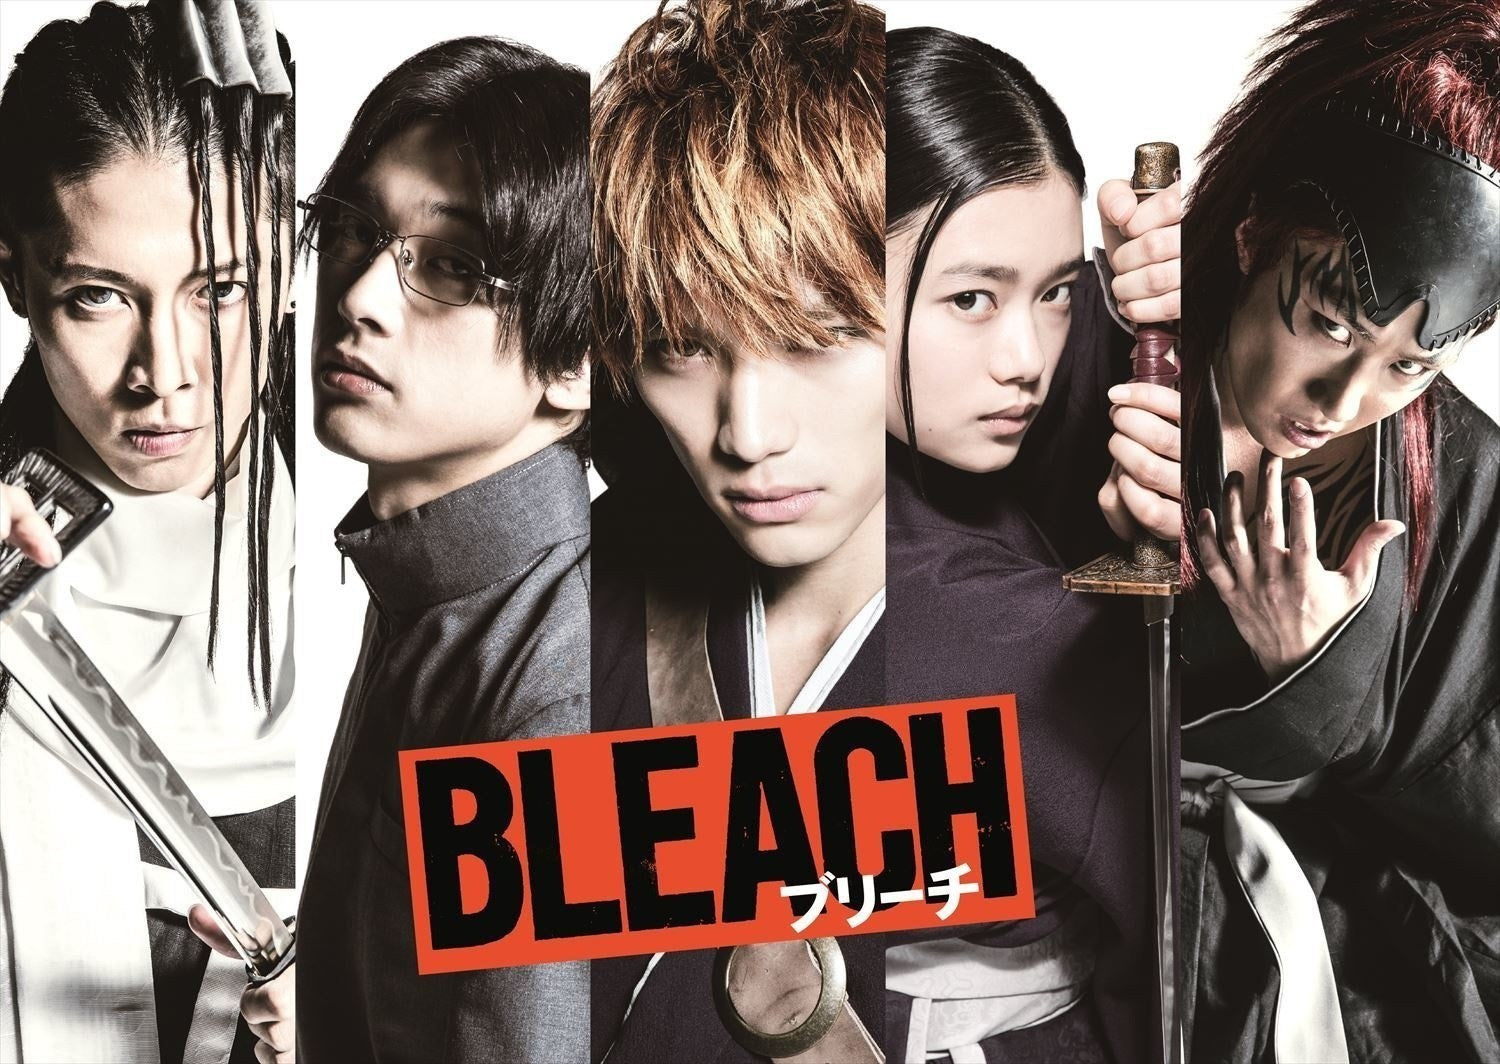 NANI?!?! DID THEY GET IT RIGHT? BLEACH (LIVE ACTION REVIEW)